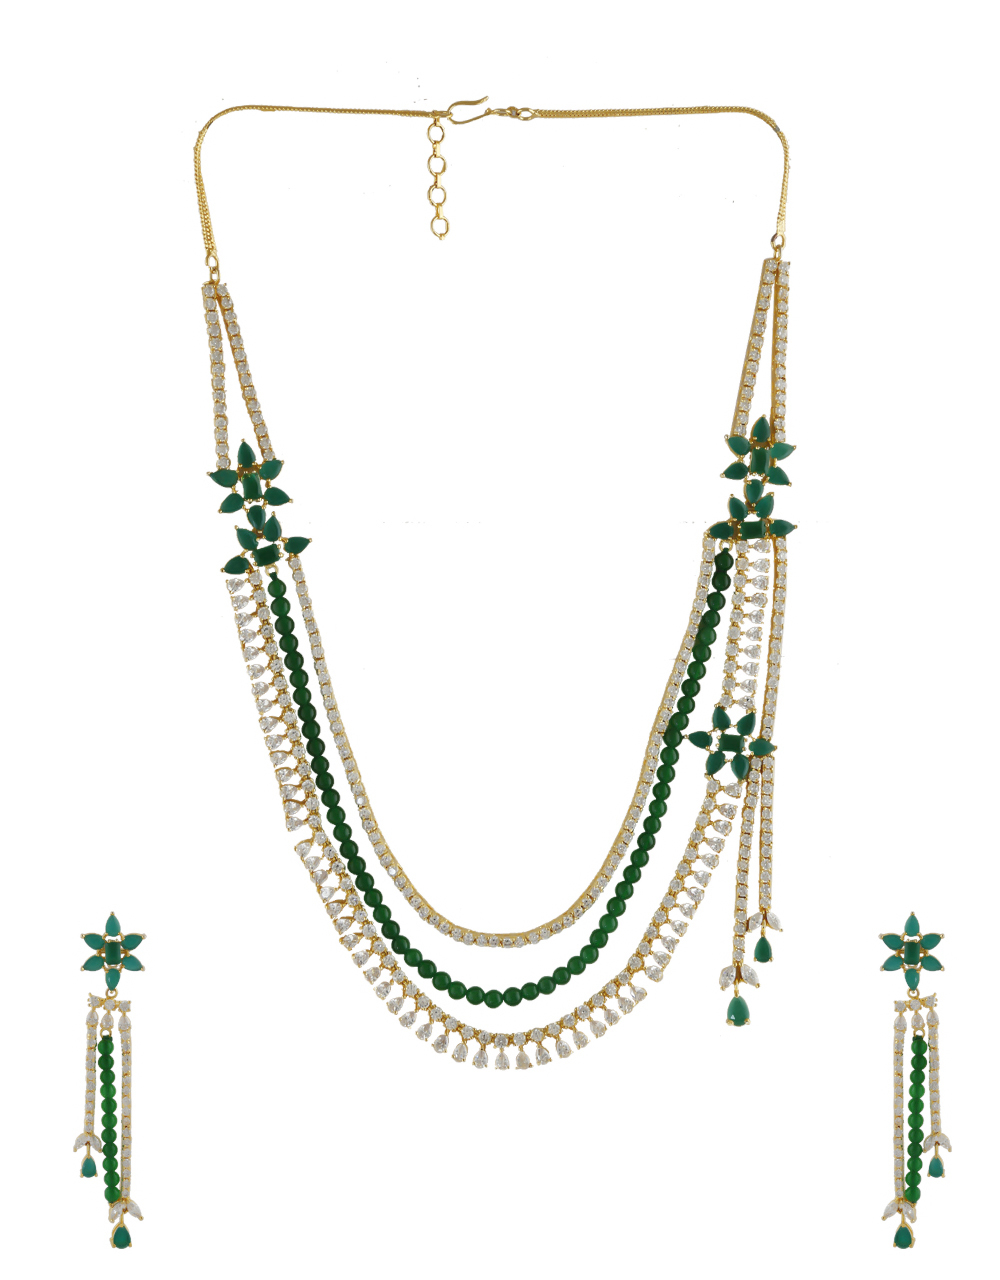 Green Colour Gold Finish Floral Design American Diamond Necklace